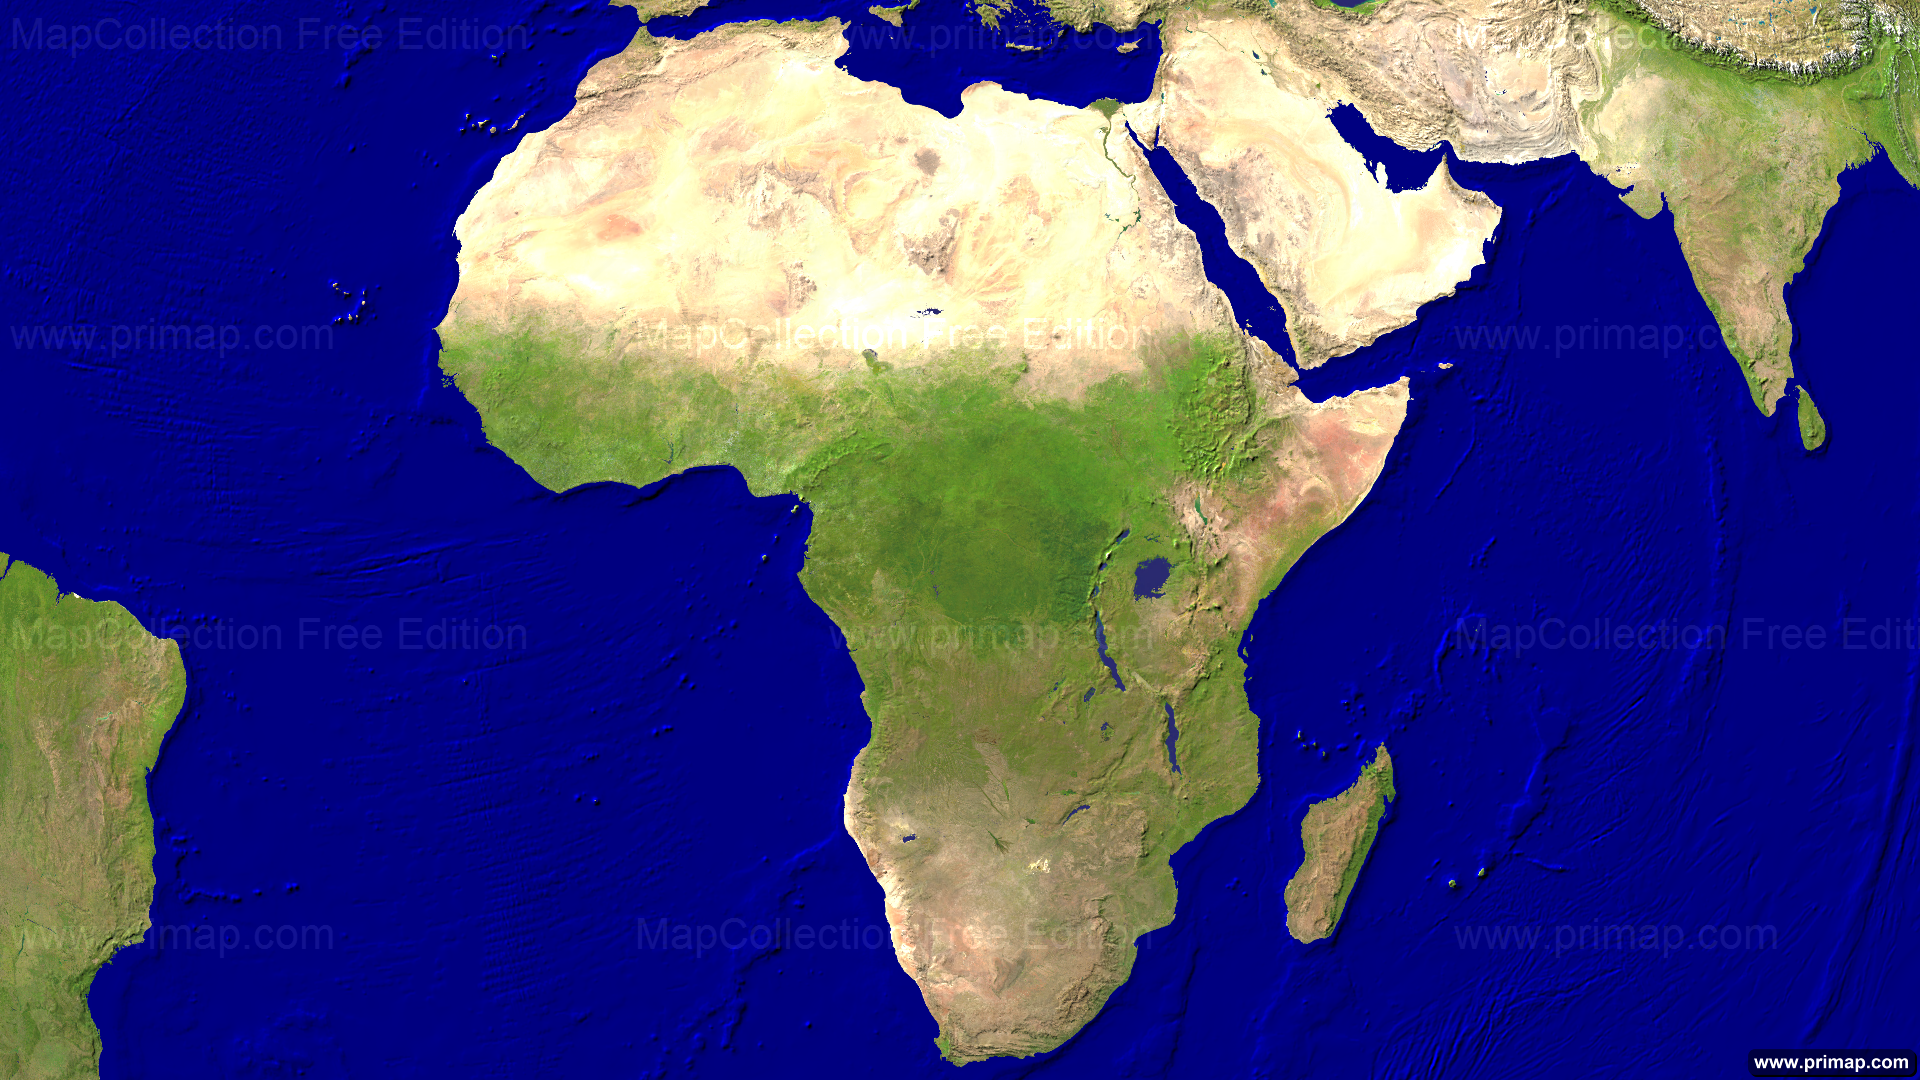 Bank to prepare billion dollar map of africas natural resources world bank to prepare billion dollar map of africas natural resources gumiabroncs Choice Image